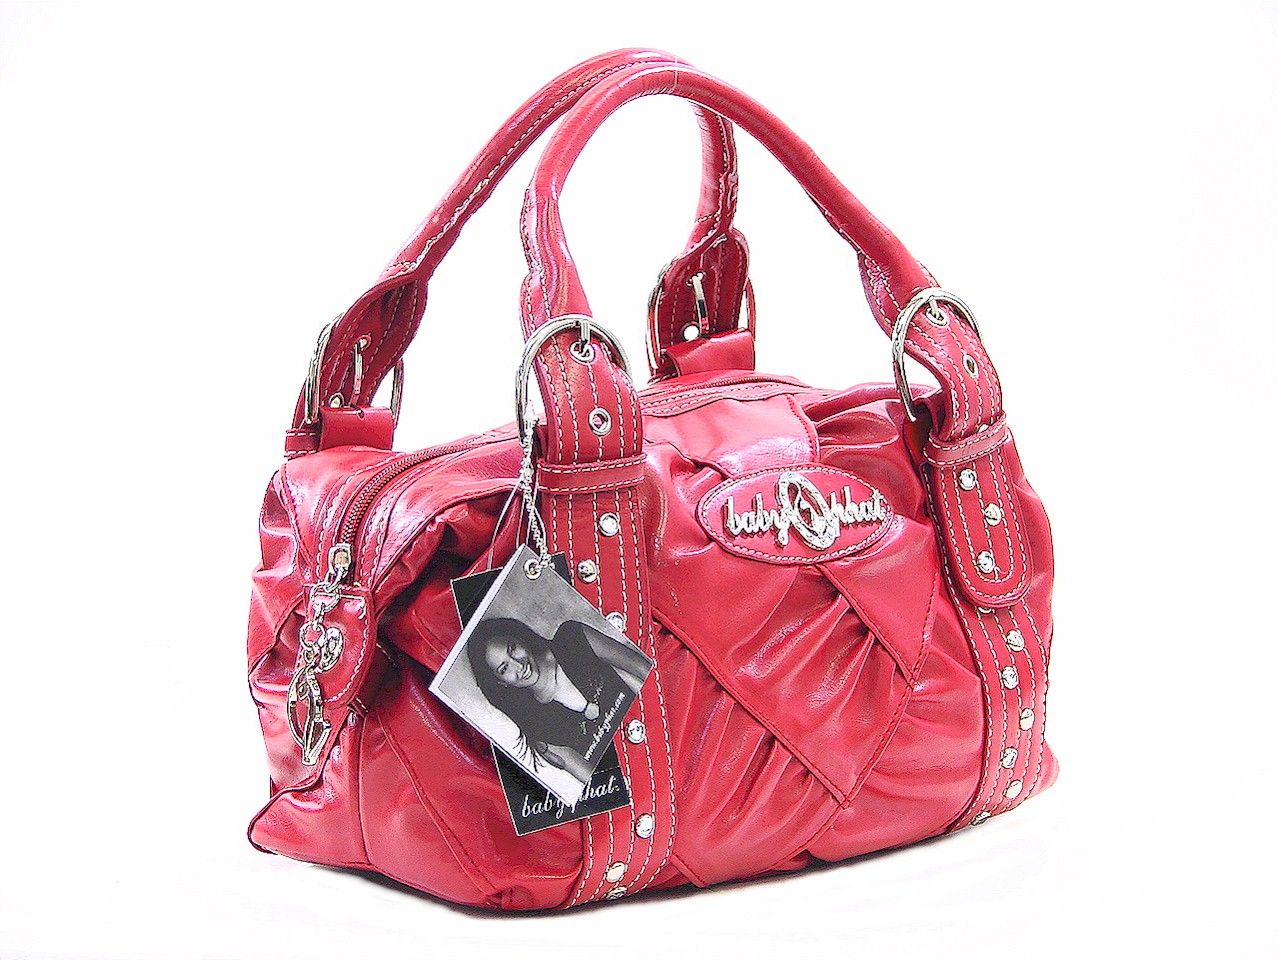 Baby Phat Candy Red Basic Princess Iii Satchel Handbag By